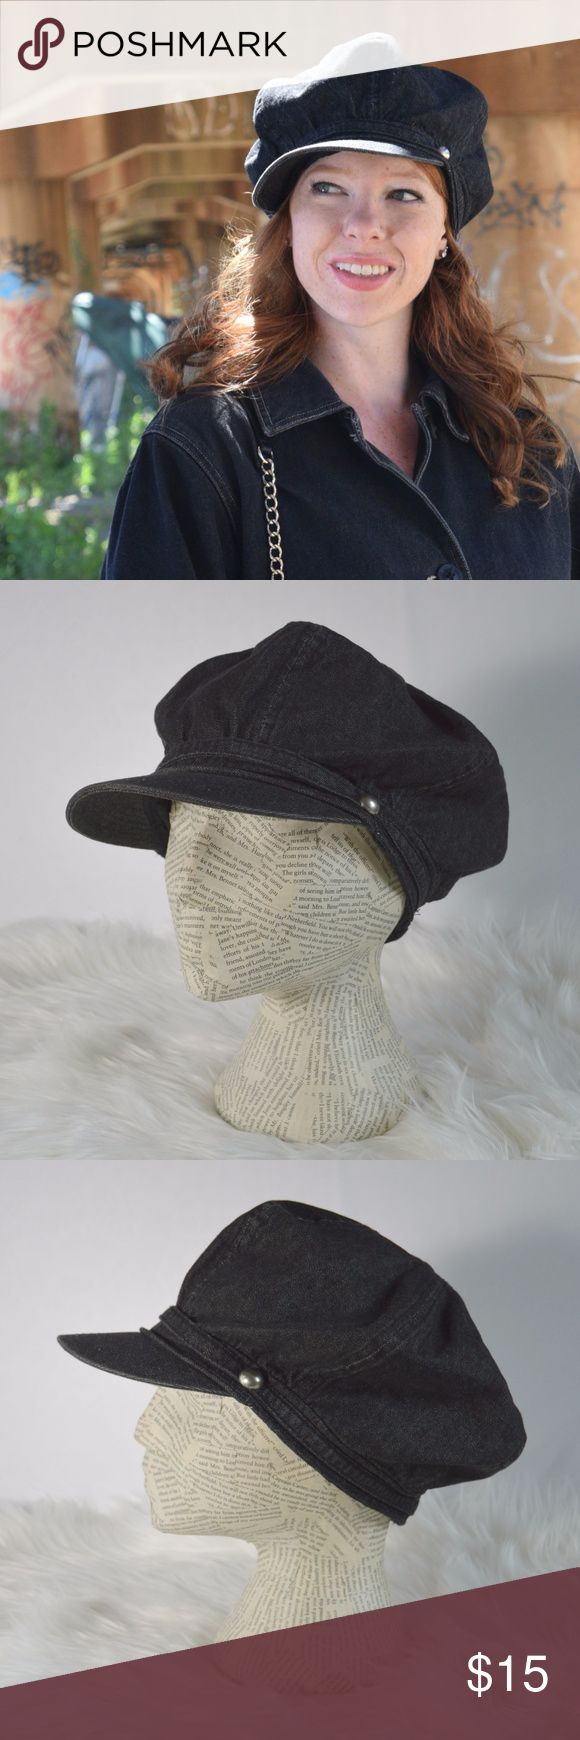 Denim Page Boy Hat Complete your look with this adorable (fully lined) denim page boy boutique style hat.  Brand: Boutique  Size: OSFM Color: Dark Wash Denim (blue/gray) Fabric: cotton blend Imported Excellent Used Condition  Reasonable Offers Welcome! Bundle and Save on Shipping! Boutique Accessories Hats